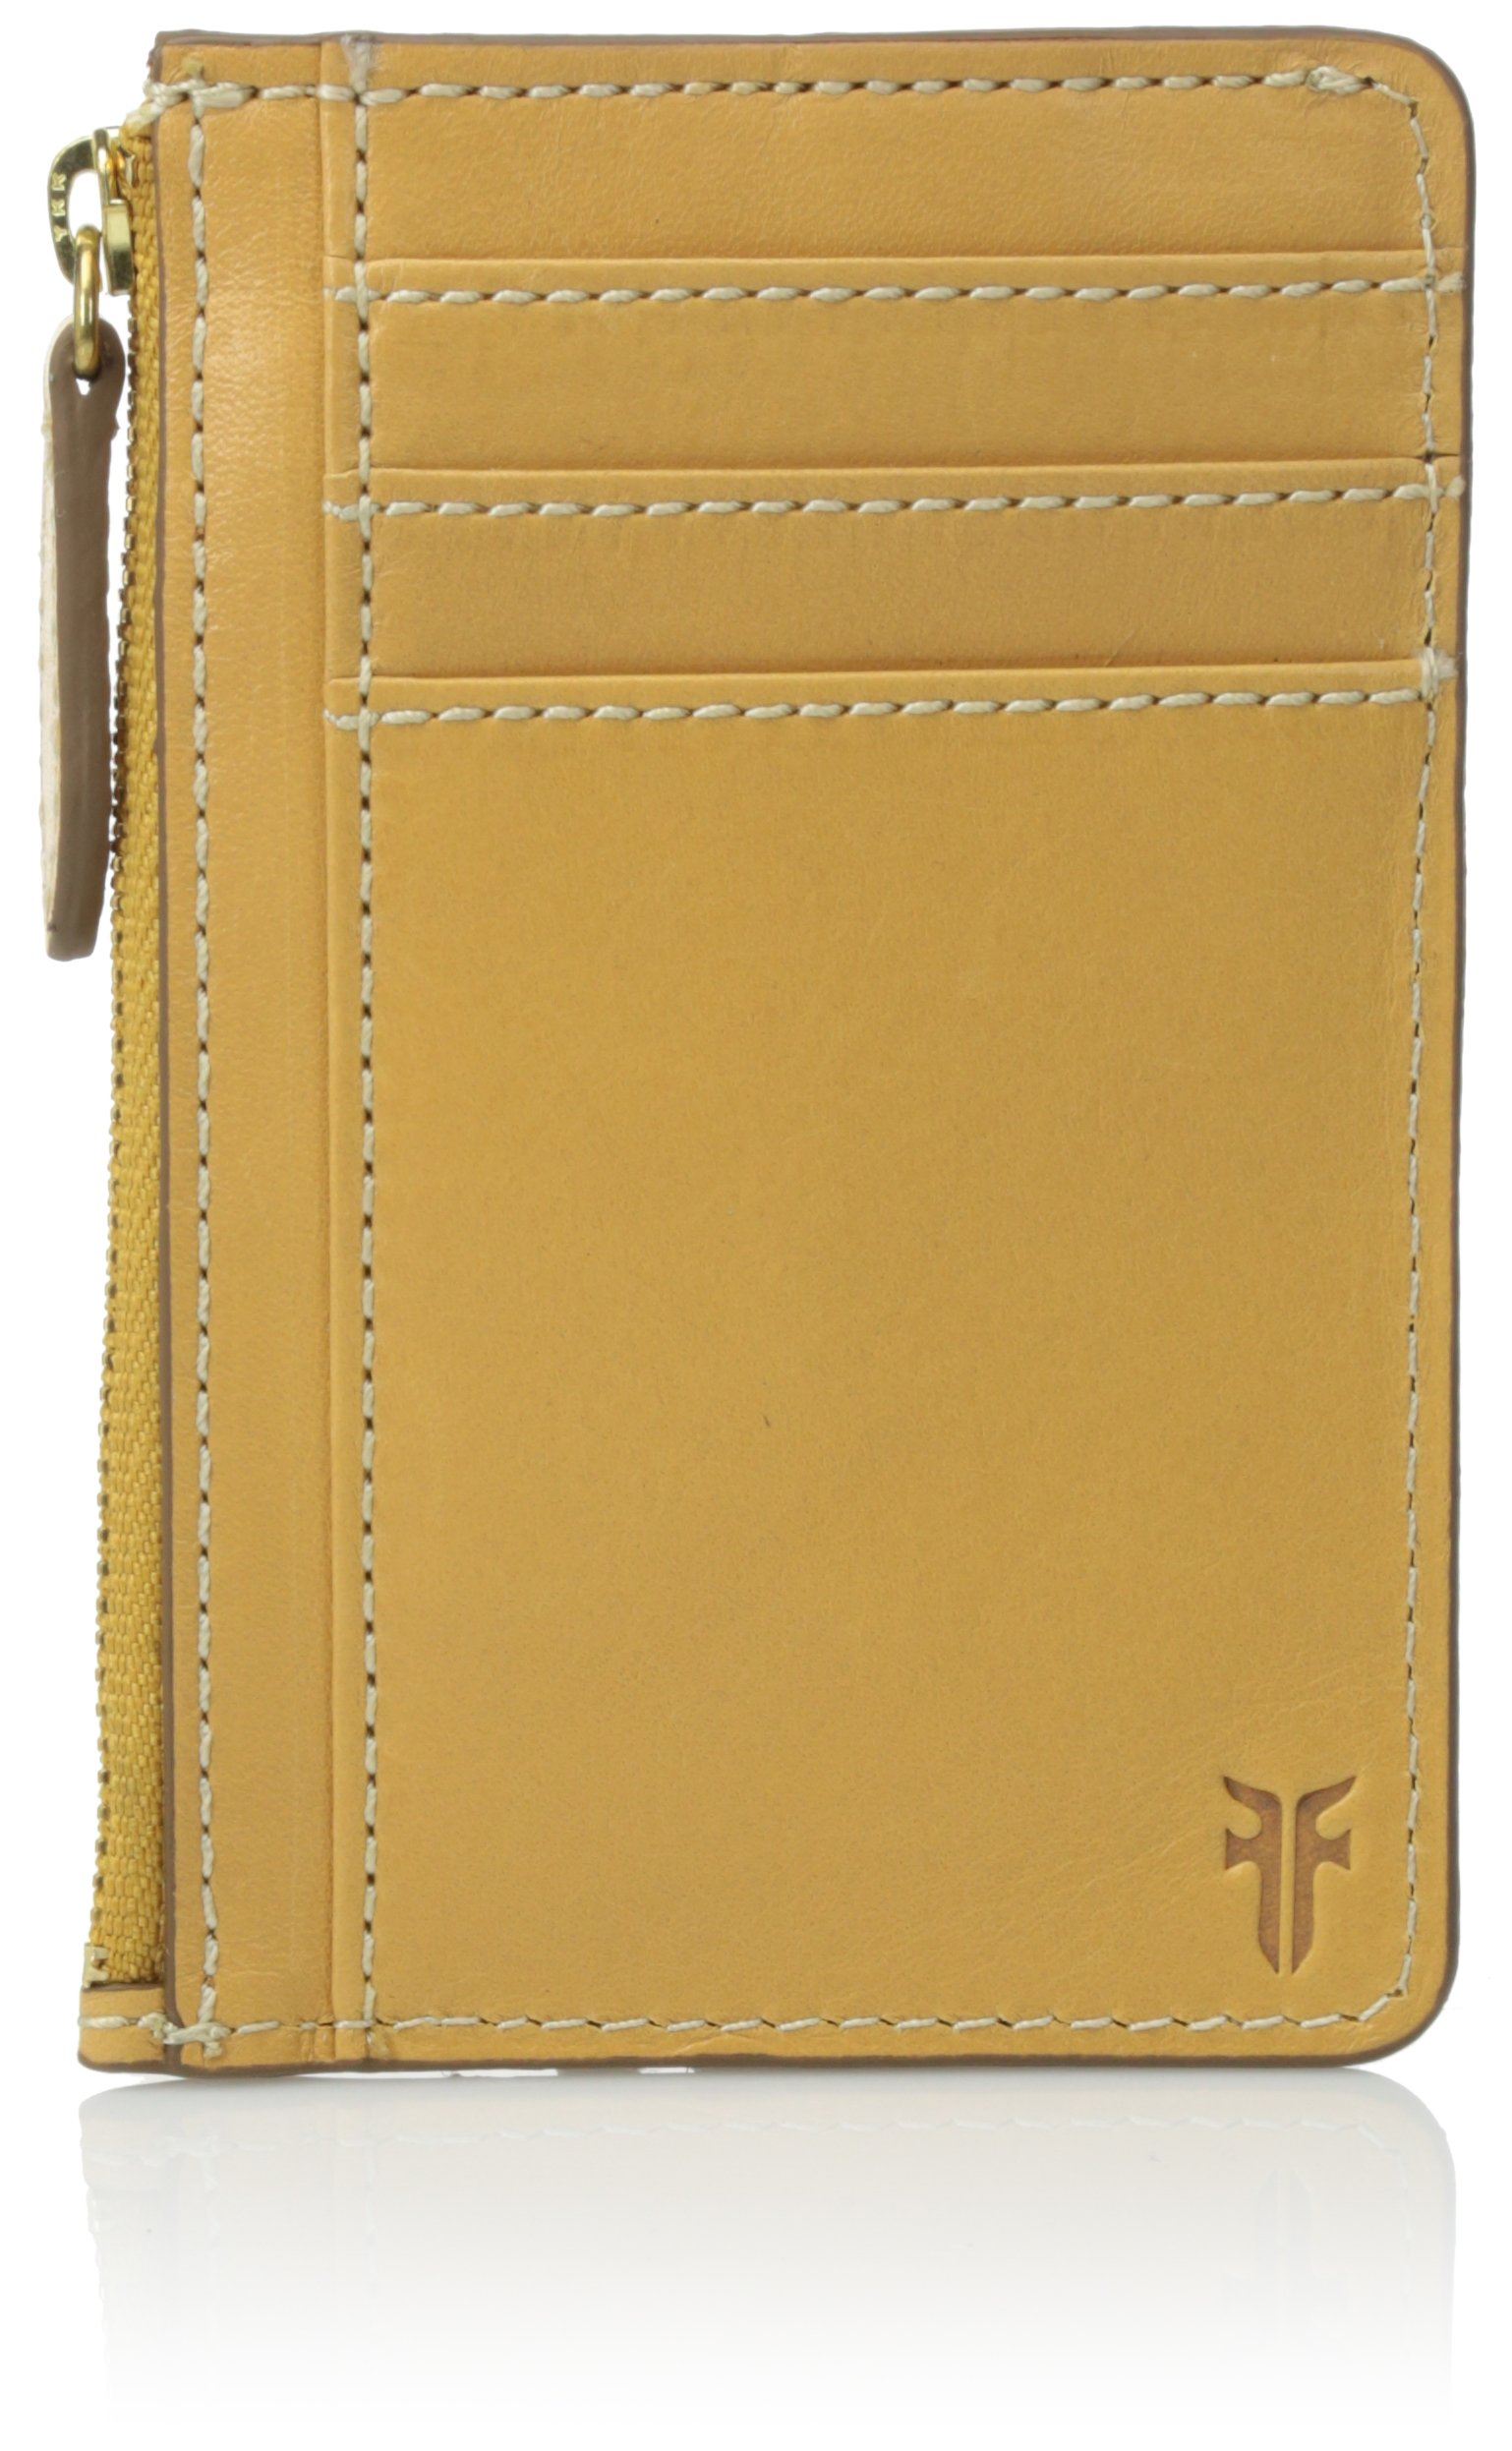 FRYE Women's Harness Id Card Case, Yellow, One Size